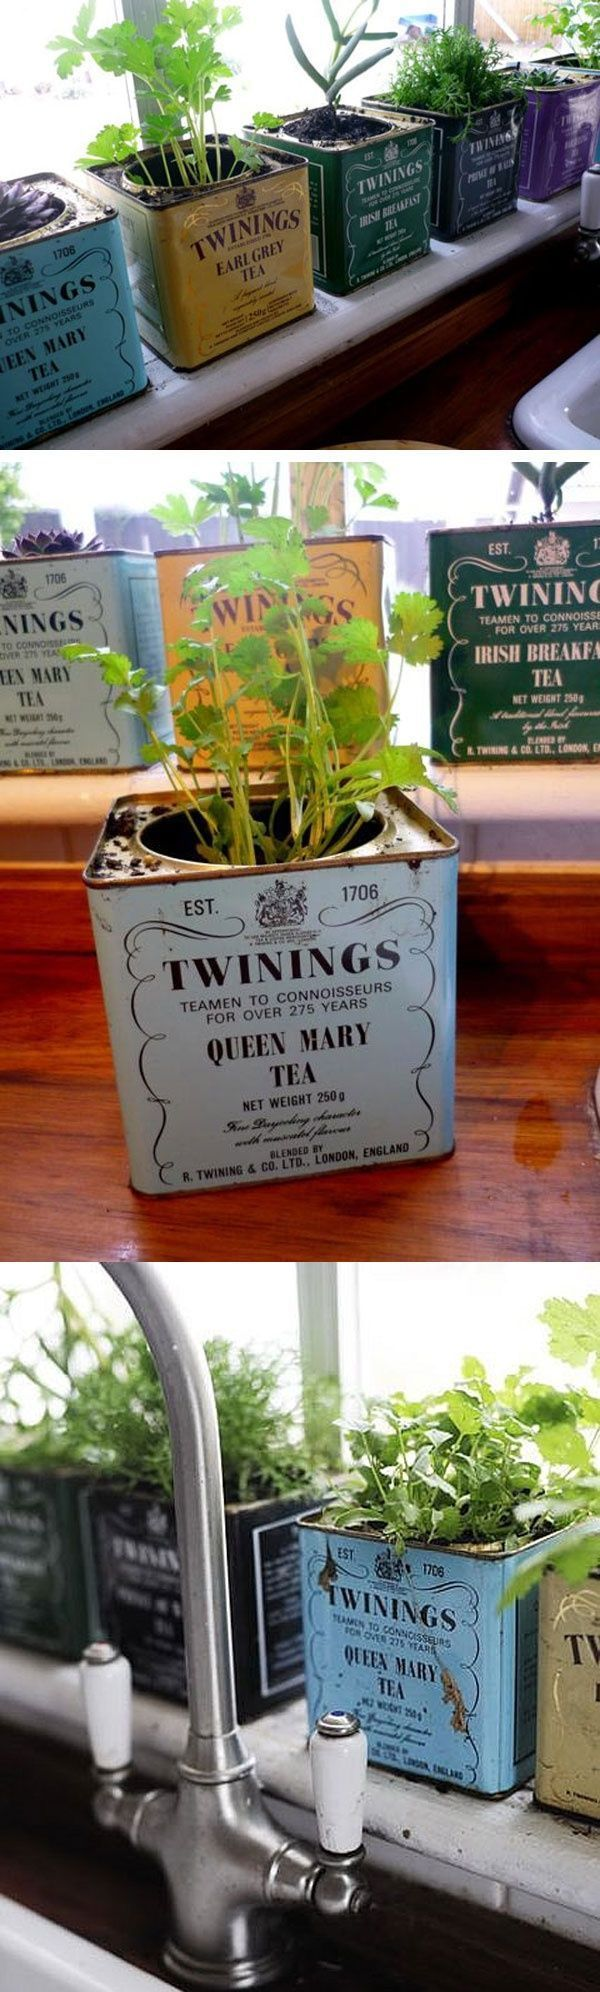 Twinings and other tea tins for herbs.  30 Amazing DIY Indoor Herbs Garden Ideas  #GardenIdeas #Gardening